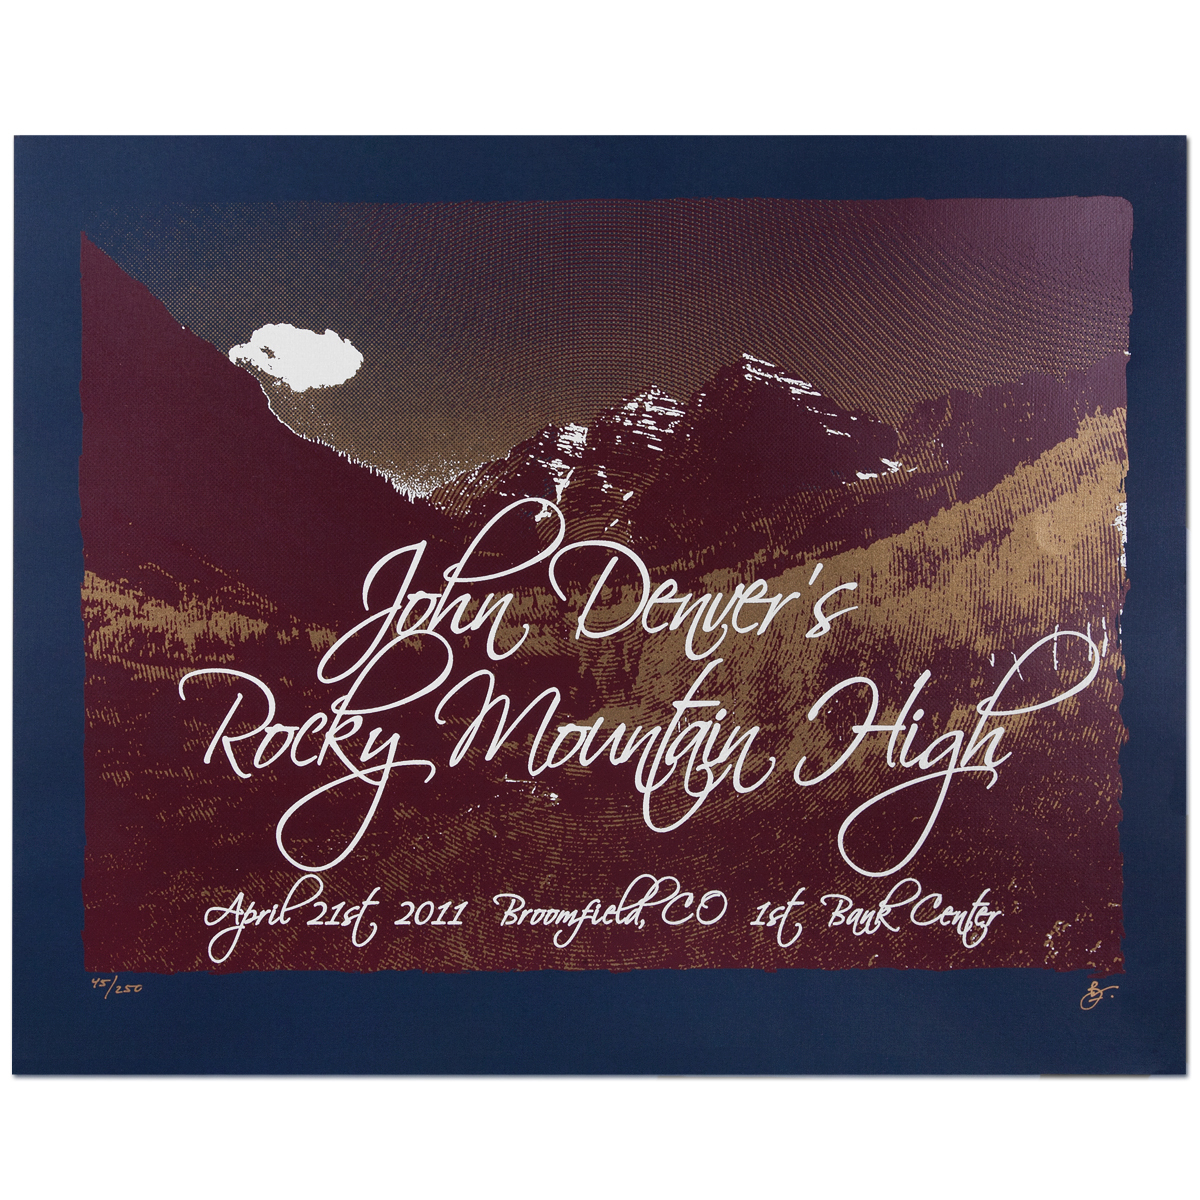 John Denver Rocky Mountain High / Earth Day Poster